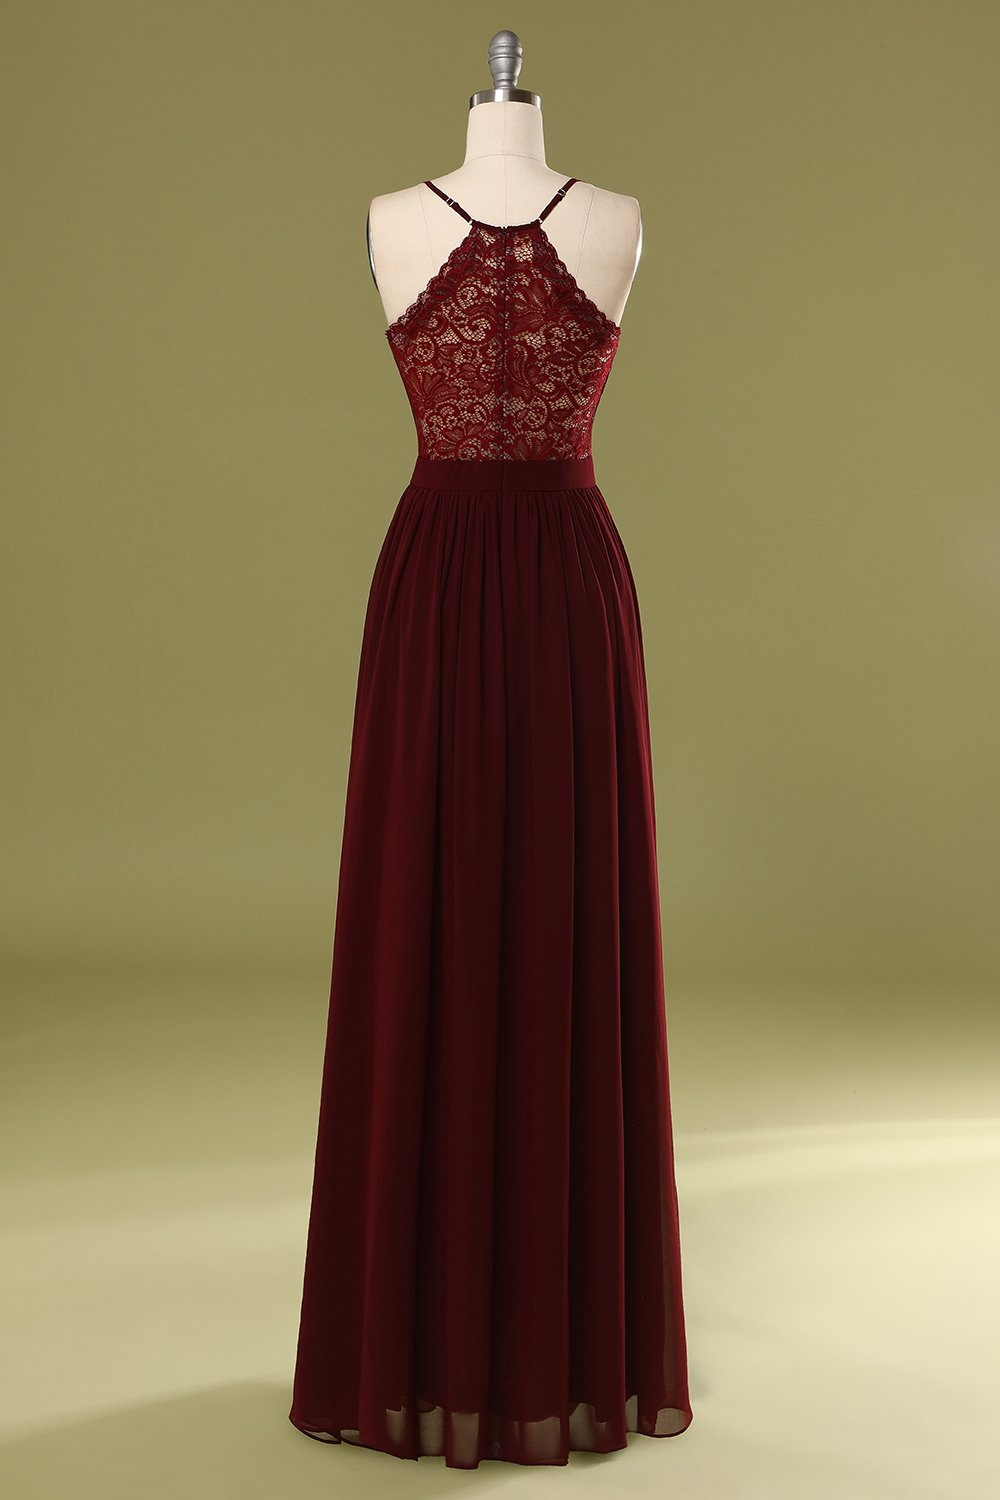 Simple Burgundy Long Bridesmaid Dress